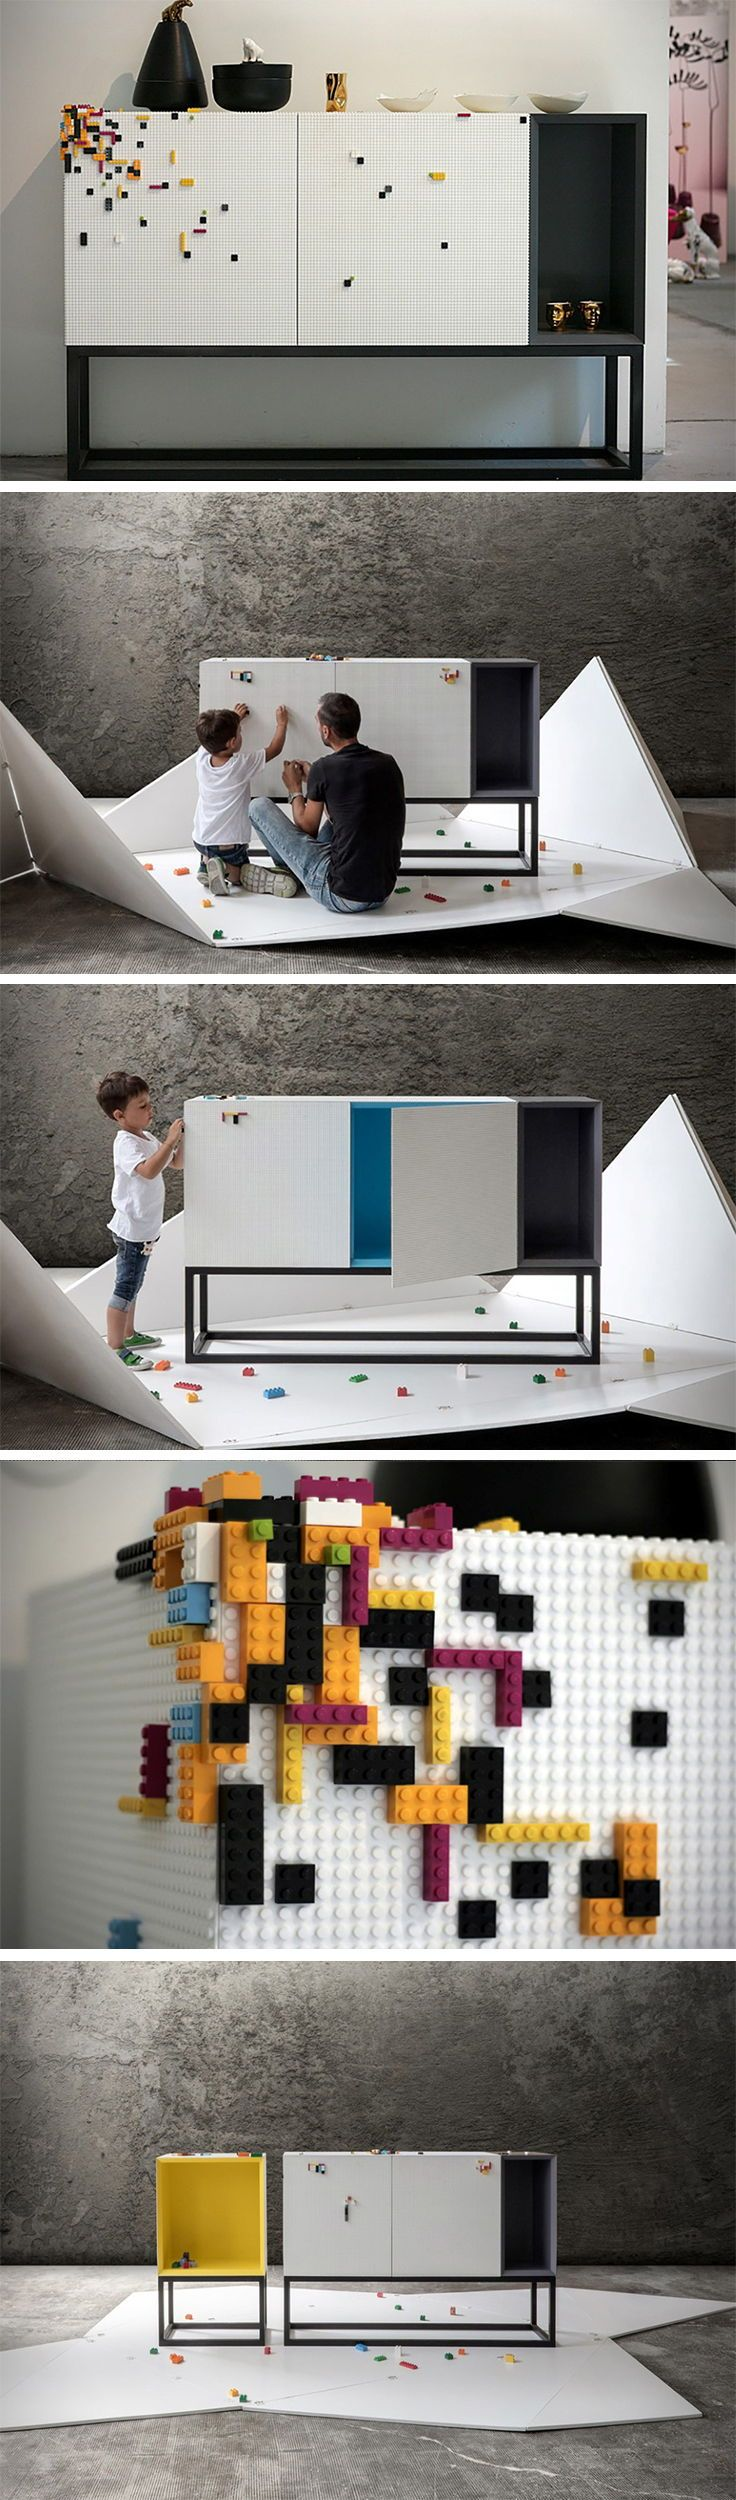 compatible furniture. Studio NINE\u0027s Lego Compatible Furniture Aims At Being A Playground For Your Children. The Comes With Machined Textured Layer That\u0027s All Too S